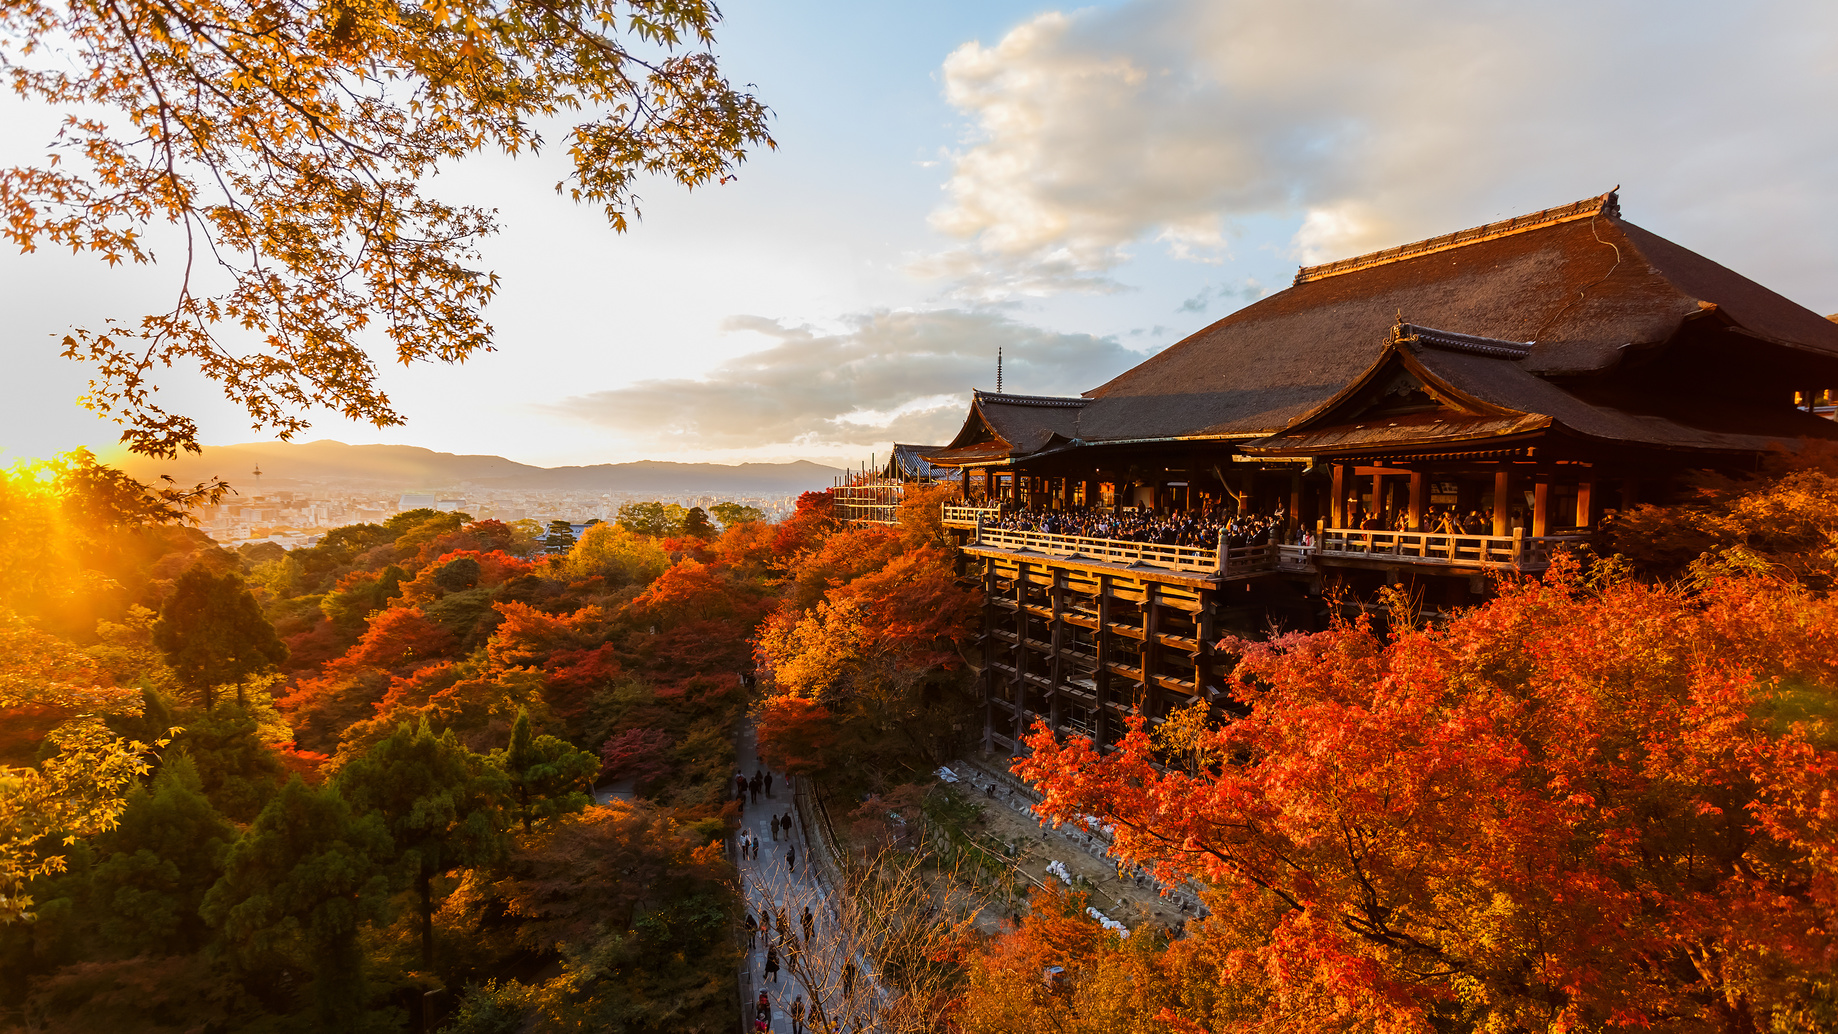 KYOTO, JAPAN - NOVEMBER 19: Kiyomizu-dera in Kyoto, Japan on November 19, 2013. Founded in Heian period in 798, the present building was constructed in 1633 by Tokugawa Iemitsu